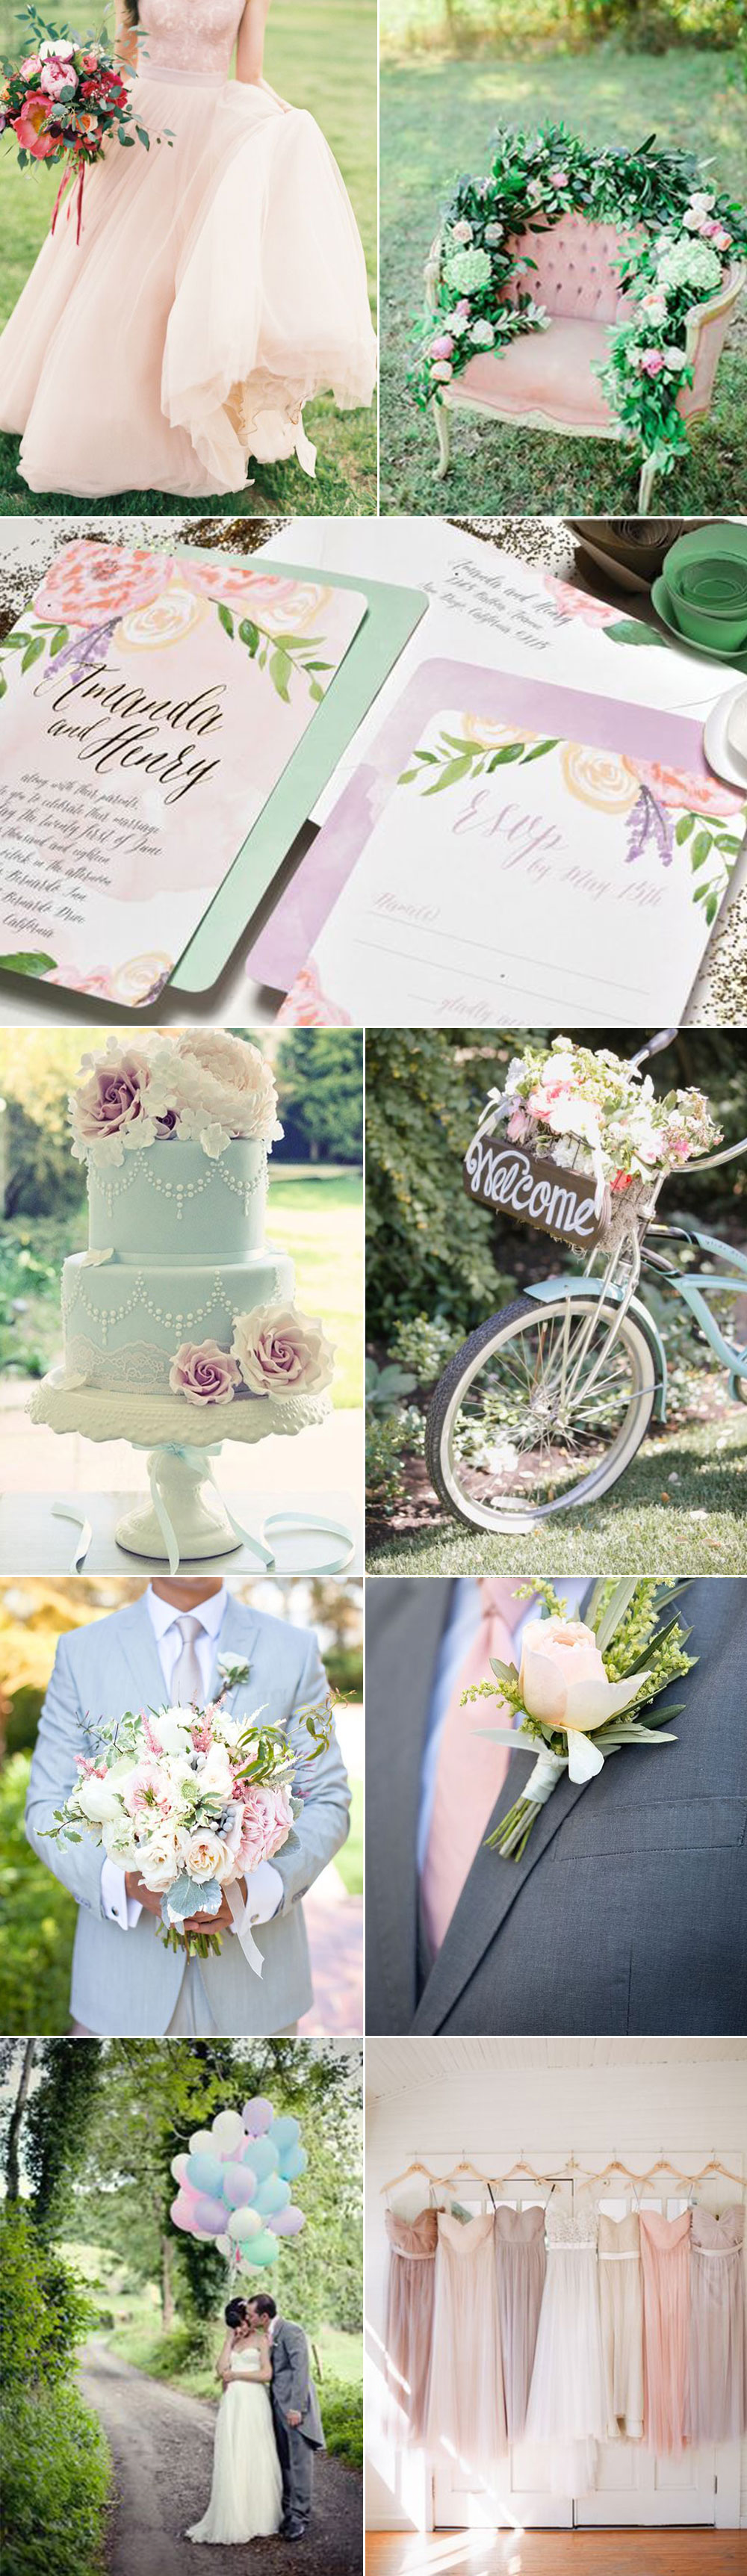 pastelweddinginspiration